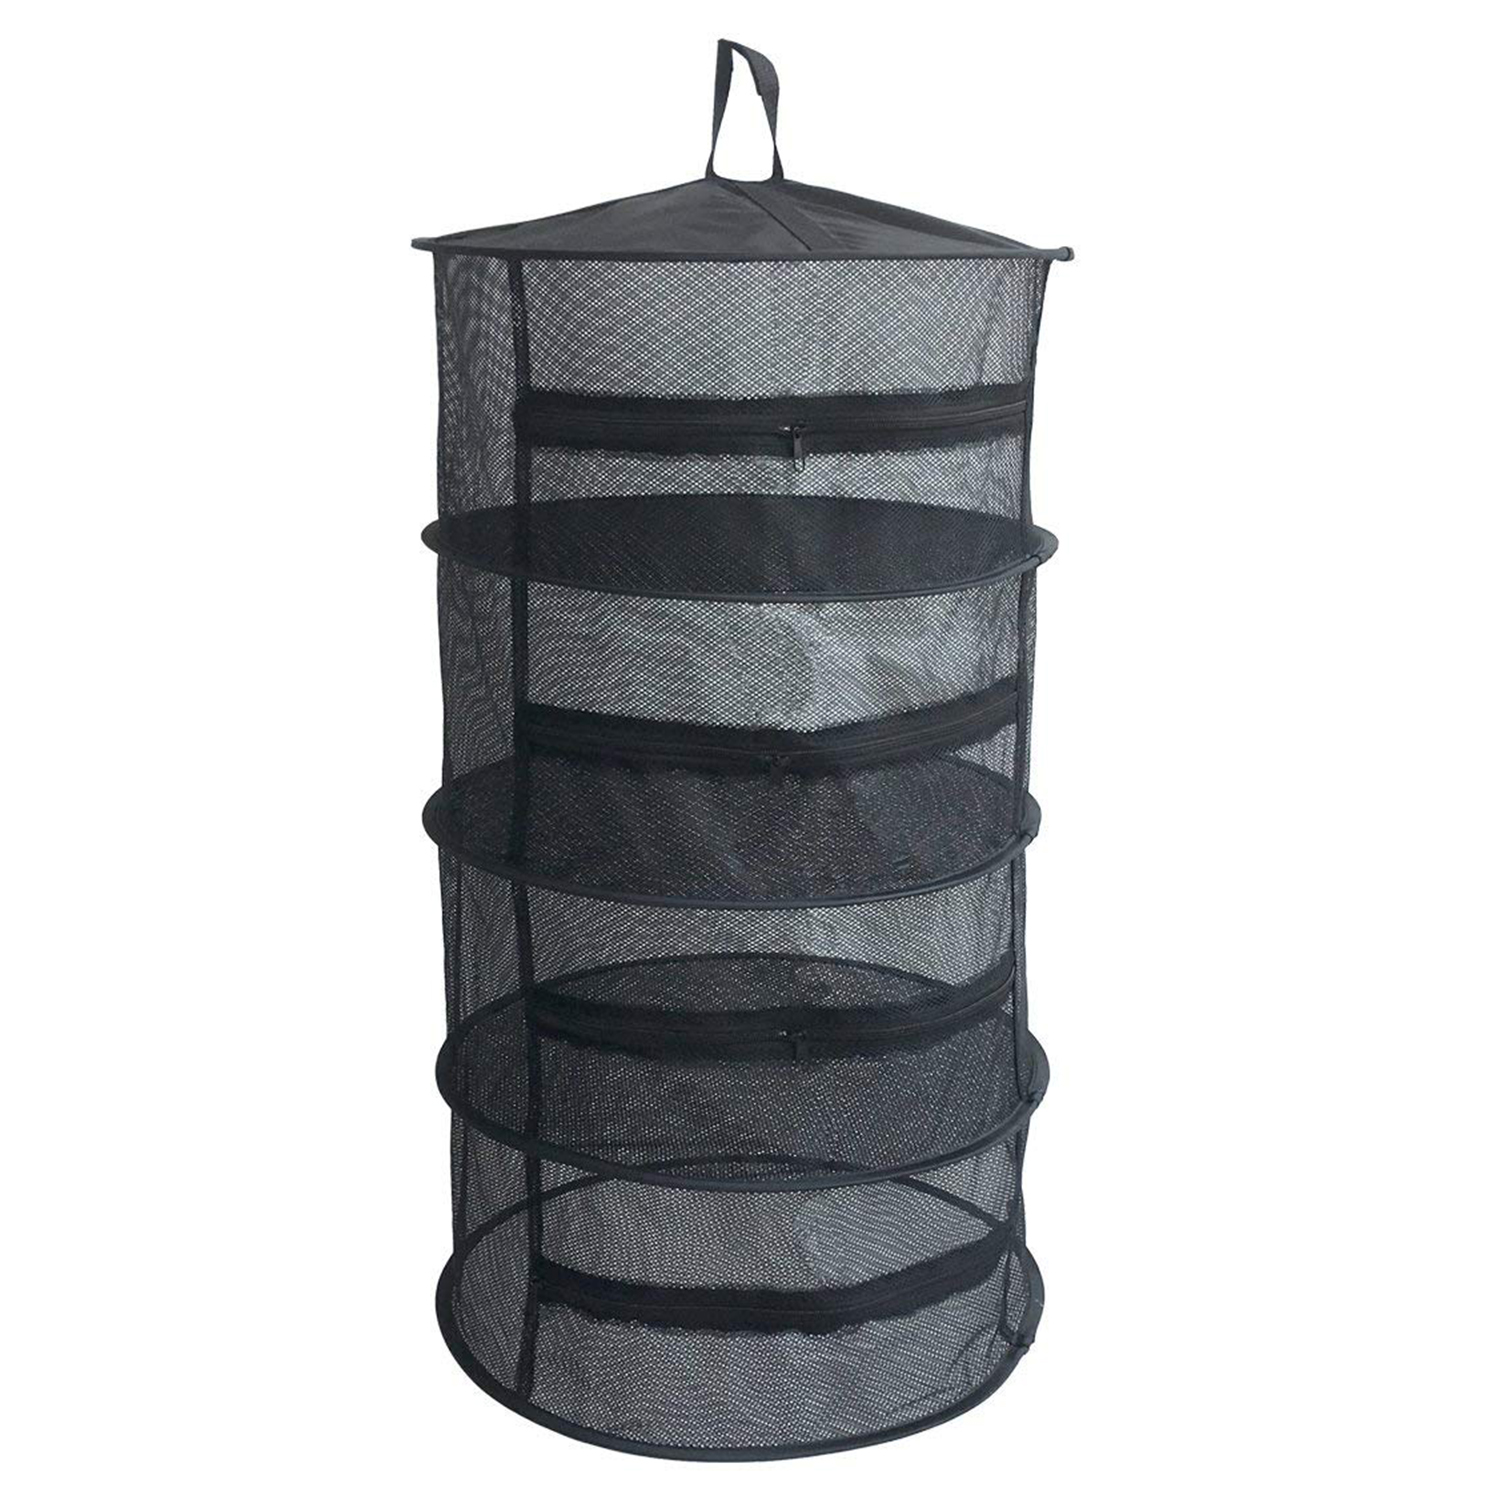 Promotion! Black Herb Drying Net with Zippers Herb Dryer Mesh Tray Drying Rack Flowers BudsPromotion! Black Herb Drying Net with Zippers Herb Dryer Mesh Tray Drying Rack Flowers Buds